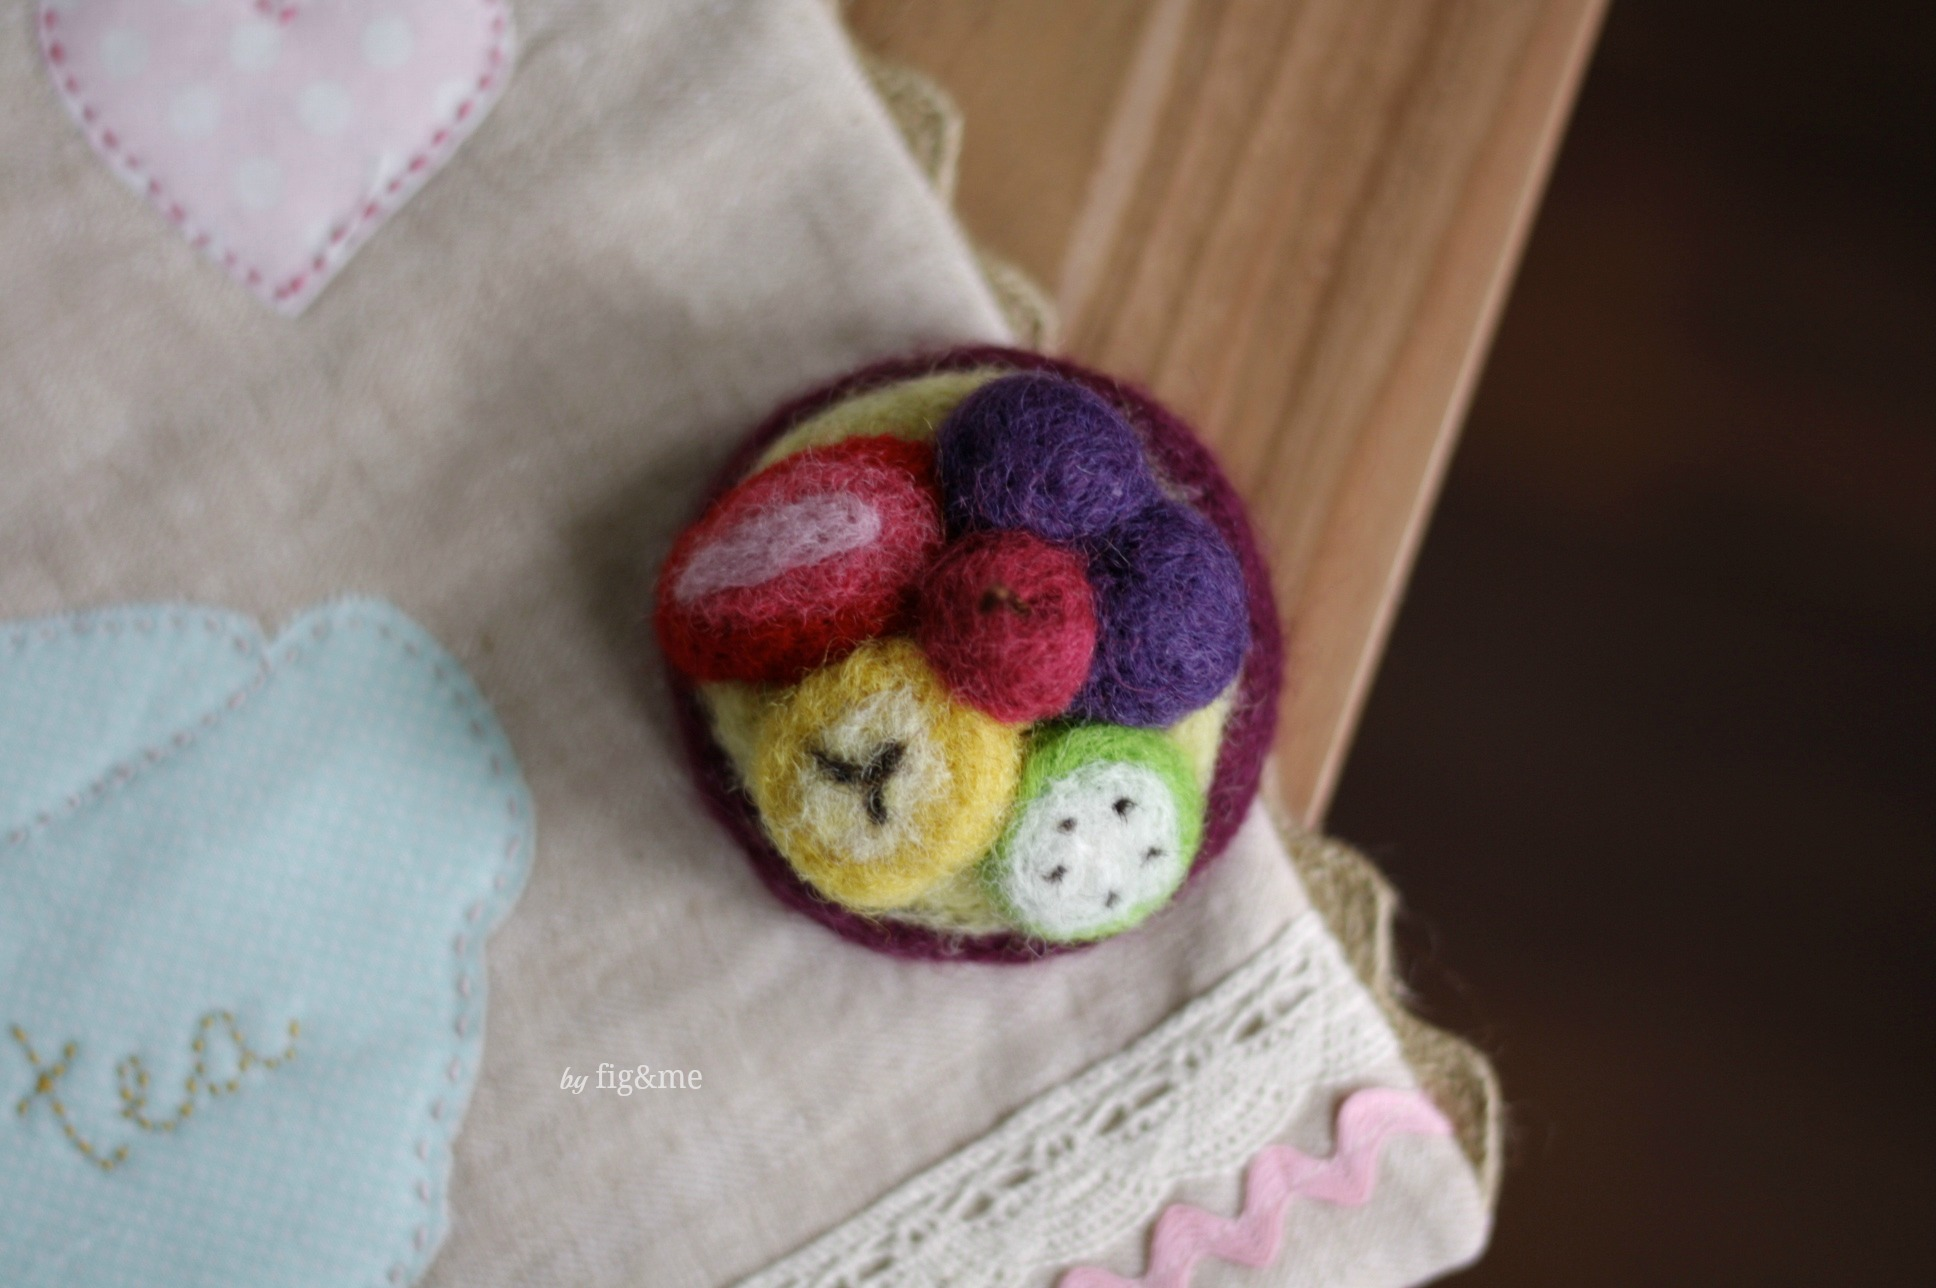 Needle-felted fruit tart by Fig and me.